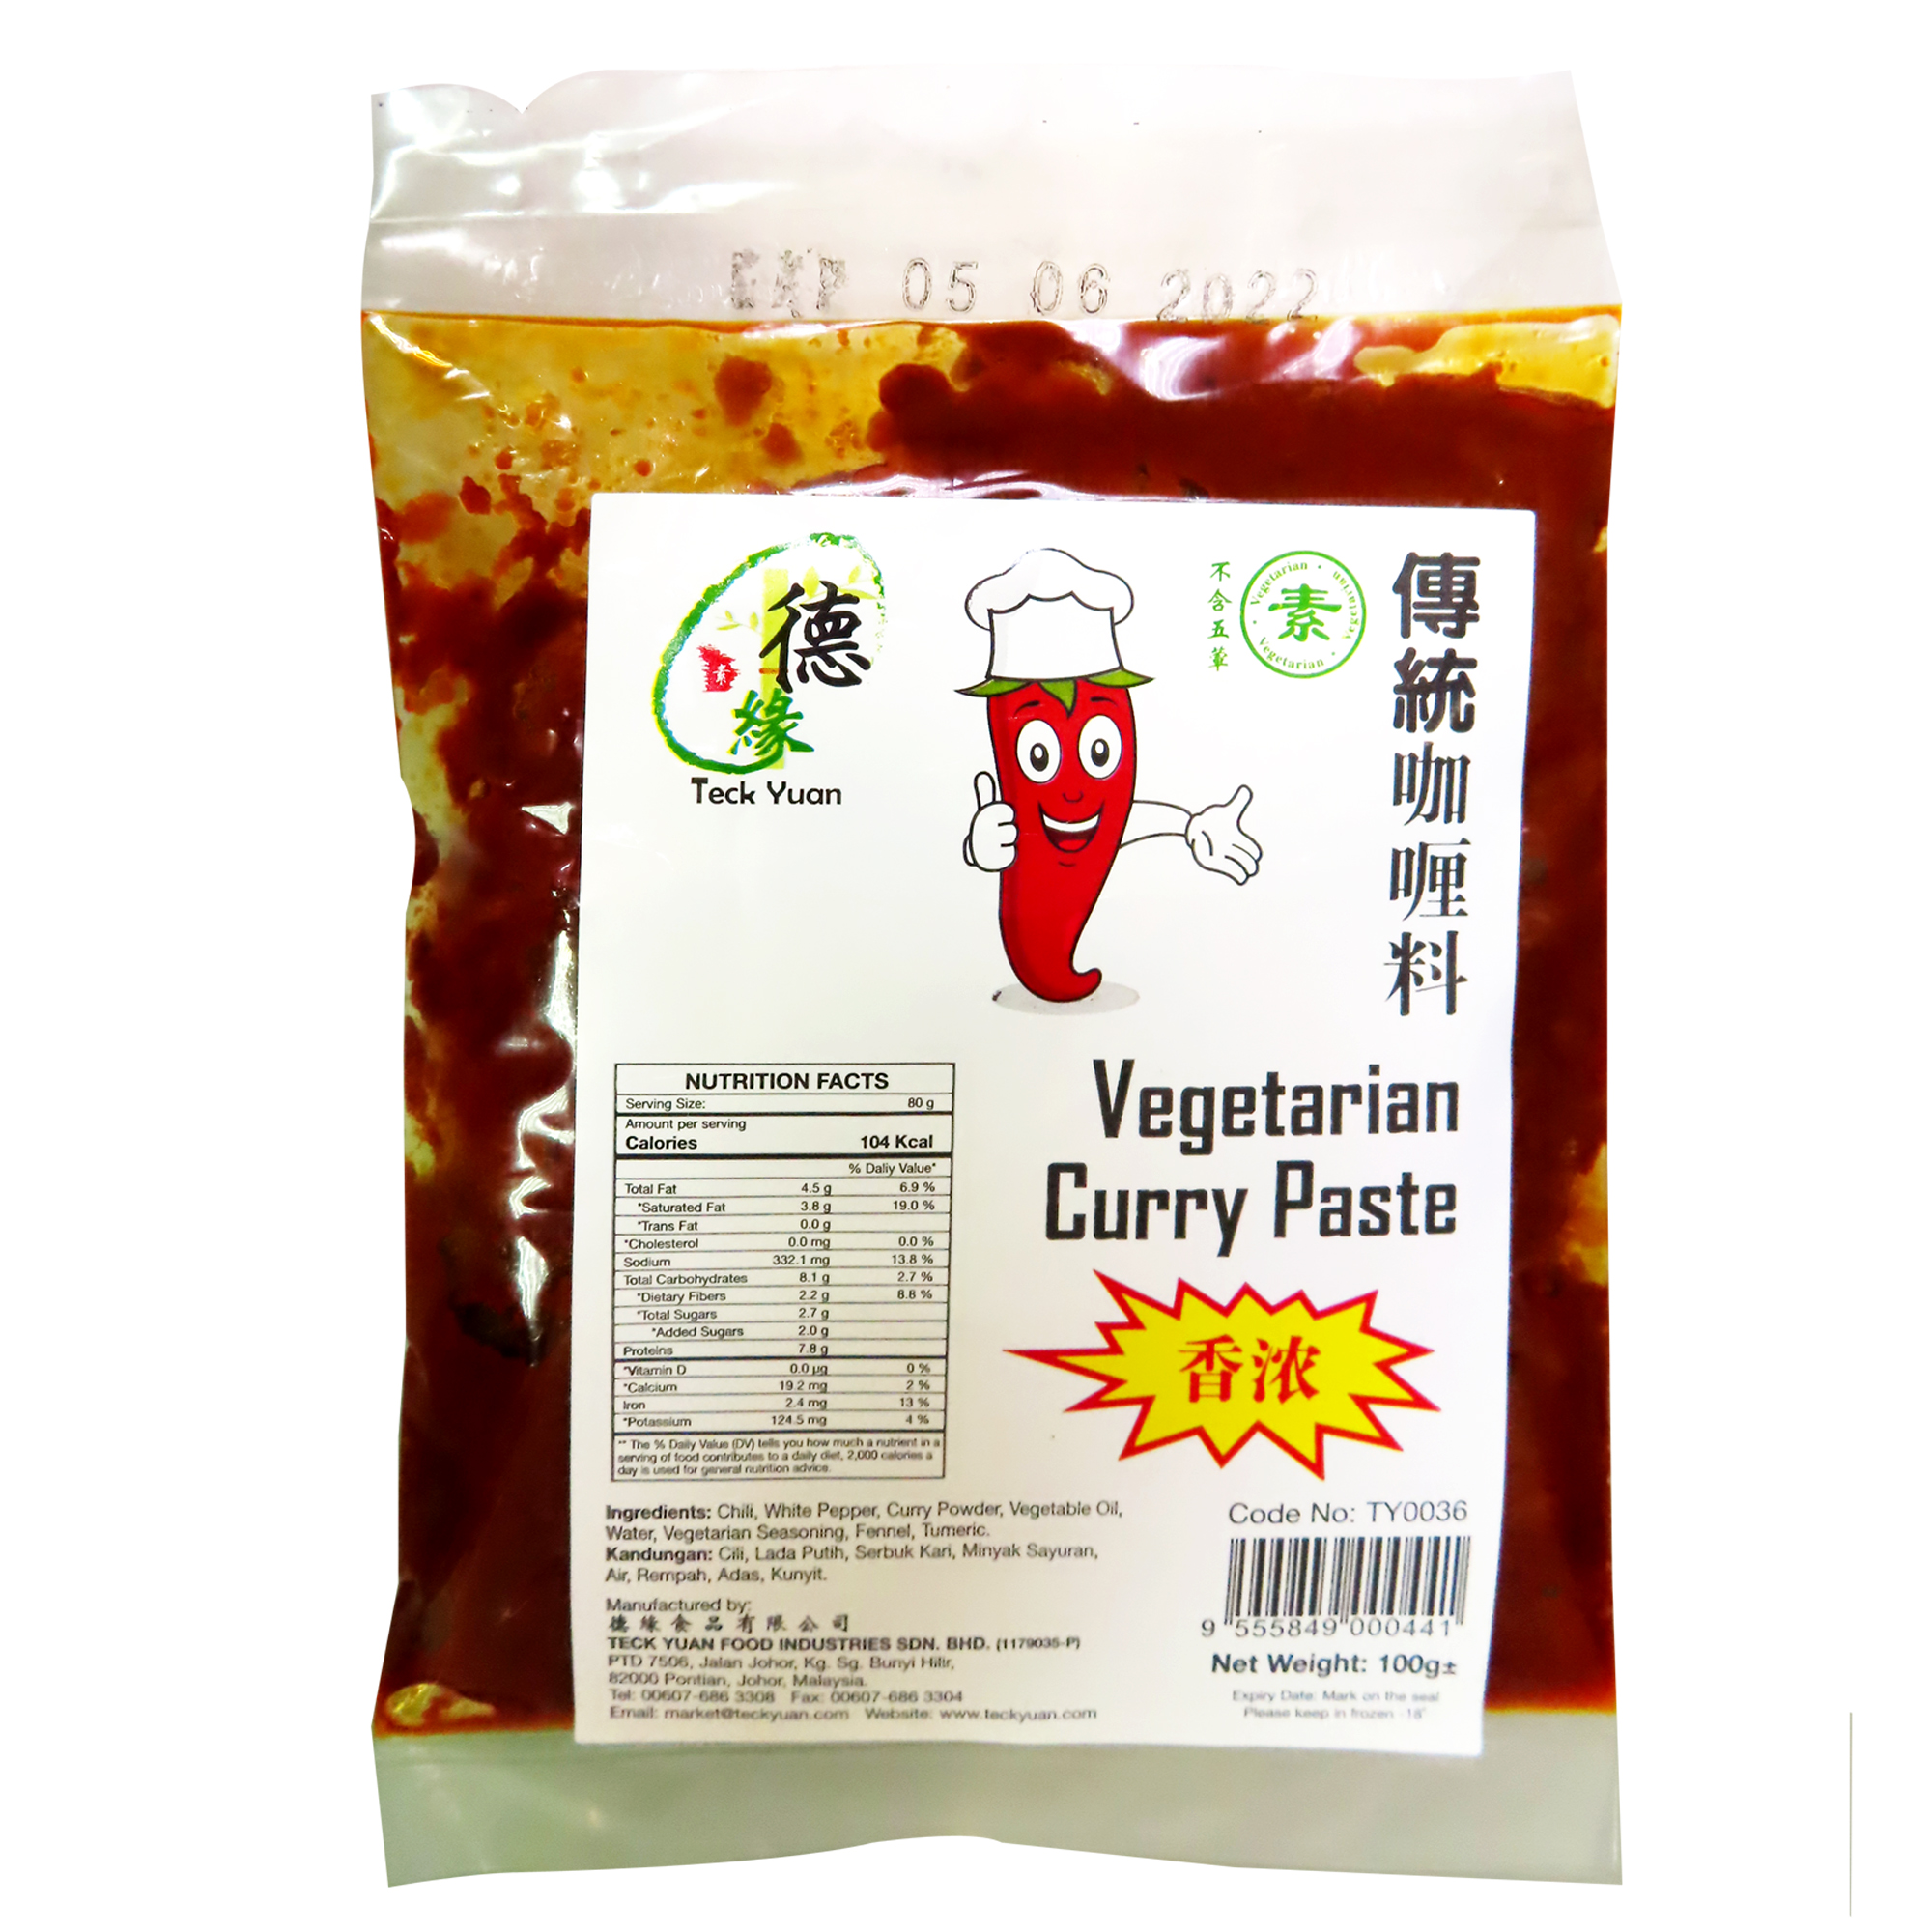 Image Vegetarian Curry Paste 德缘传统咖喱料 100grams